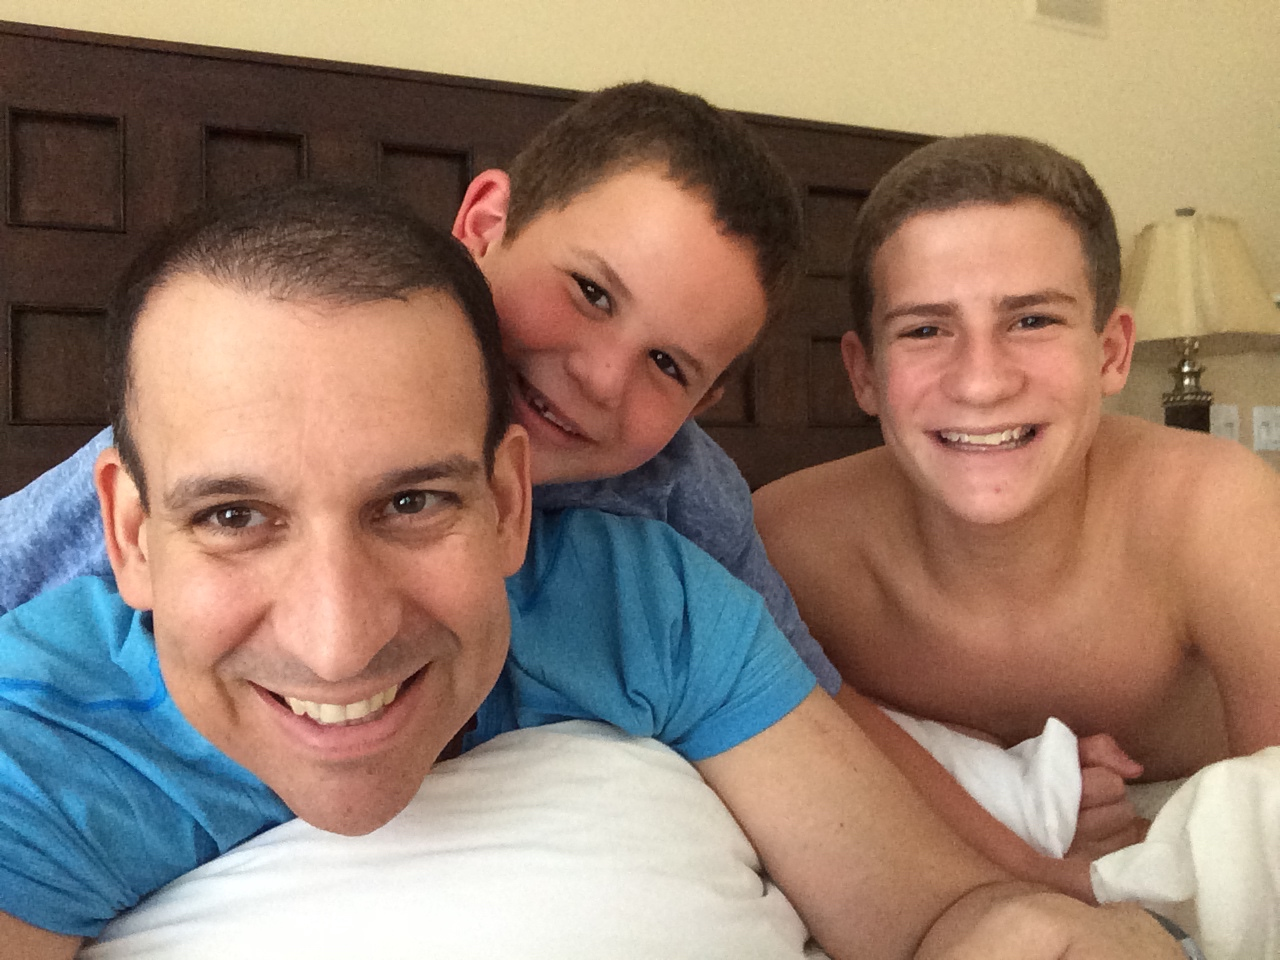 My boys keeping me company after treatment. I couldn't ask for two betters sons.